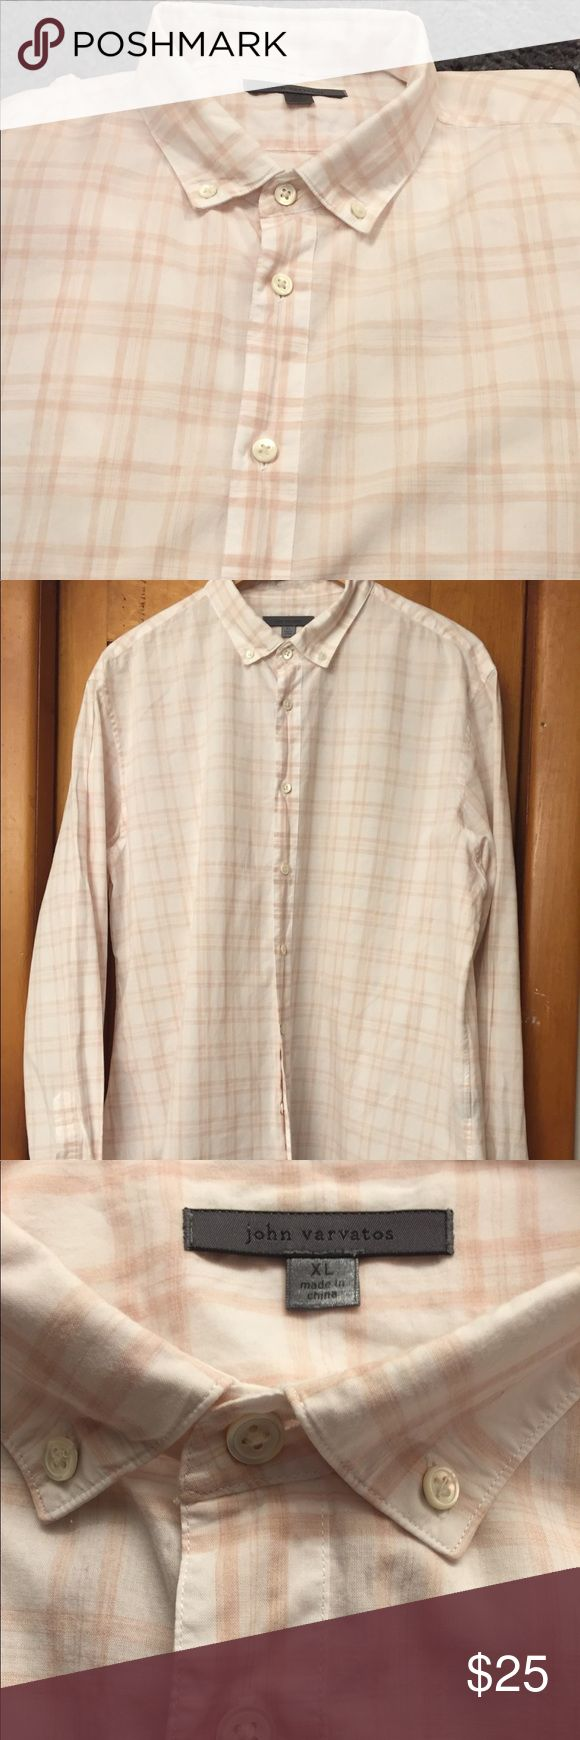 John Varvatos men's dress shirt 💥EUC💥 John Varvatos XL long sleeve dress shirt. 100% cotton. Perfect for any occasion, can be dressed up or dressed down. Measurements are in the photos. Color is beige and white. John Varvatos Shirts Dress Shirts